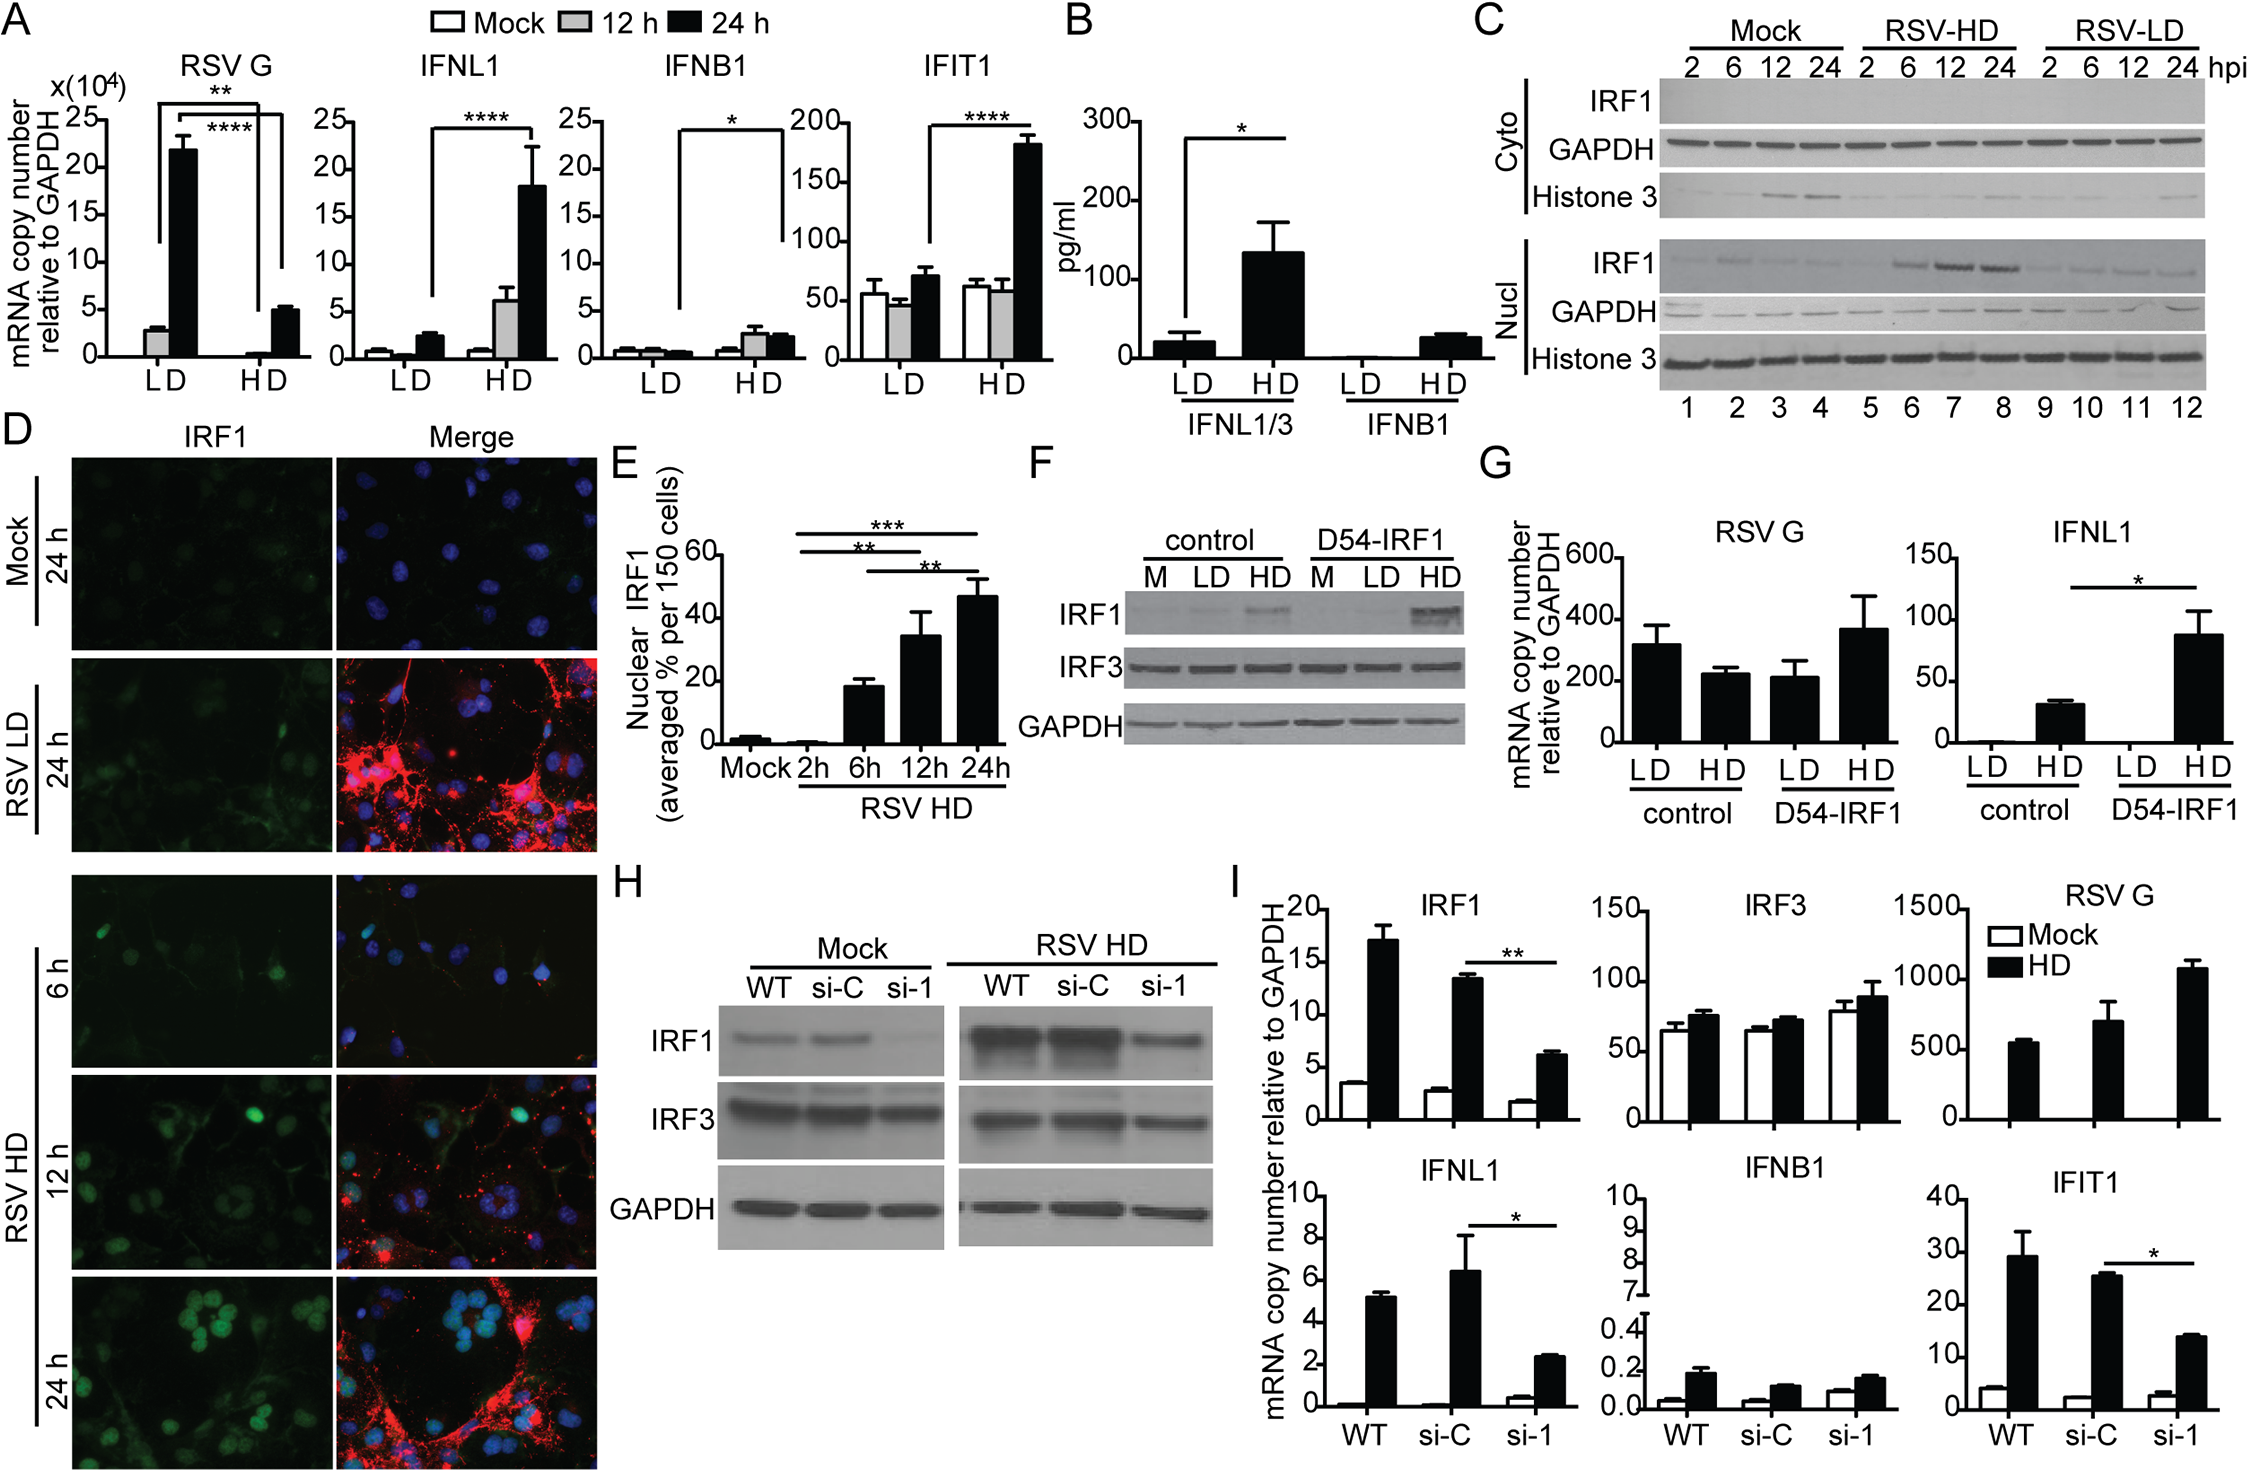 RSV iDVGs stimulate an IRF1/IFNL1-mediated antiviral response.